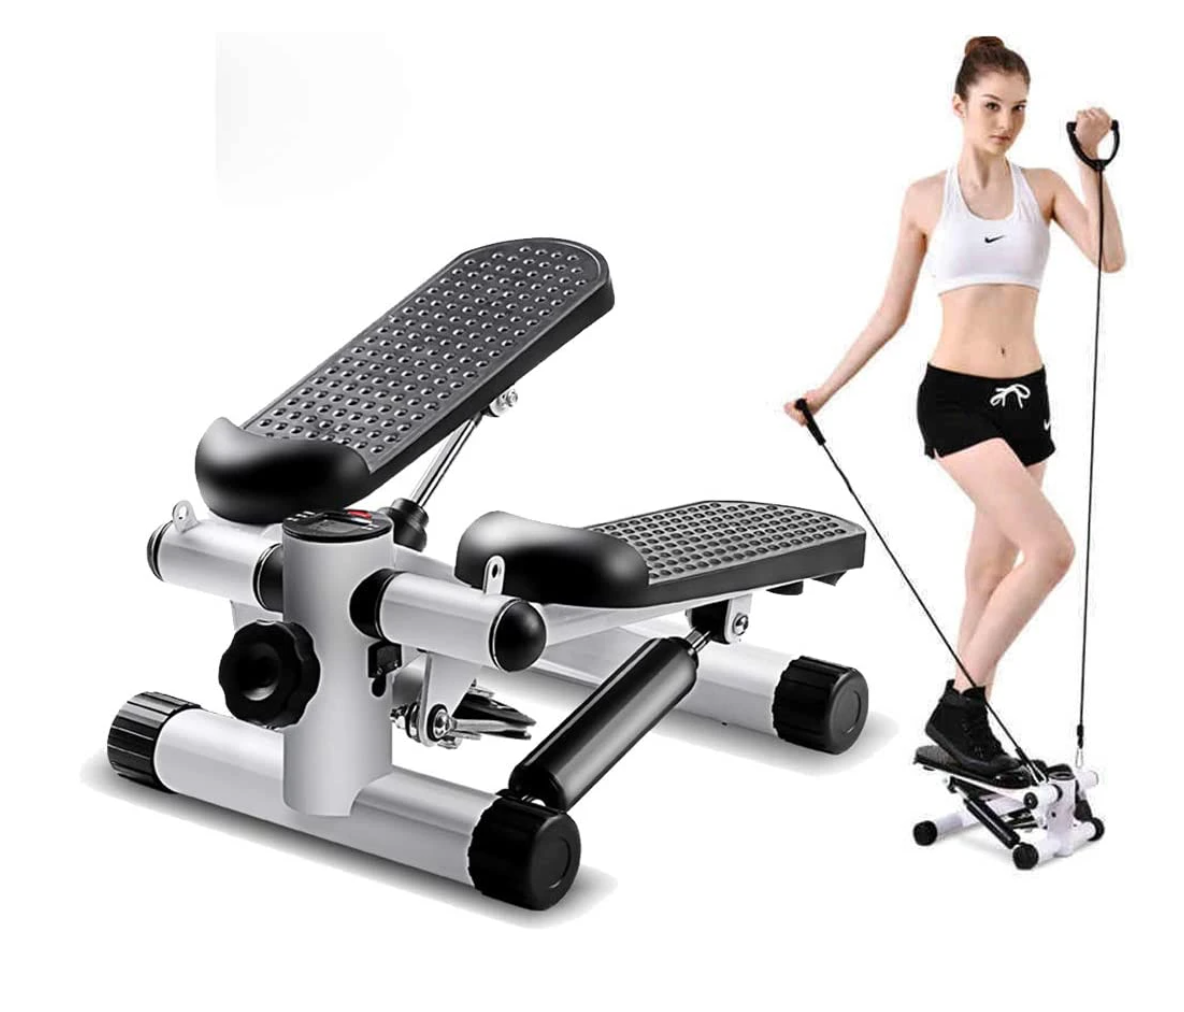 AIR STAIR CLIMBER EXERCISE MACHINE (W/ DIGITAL DISPLAY)